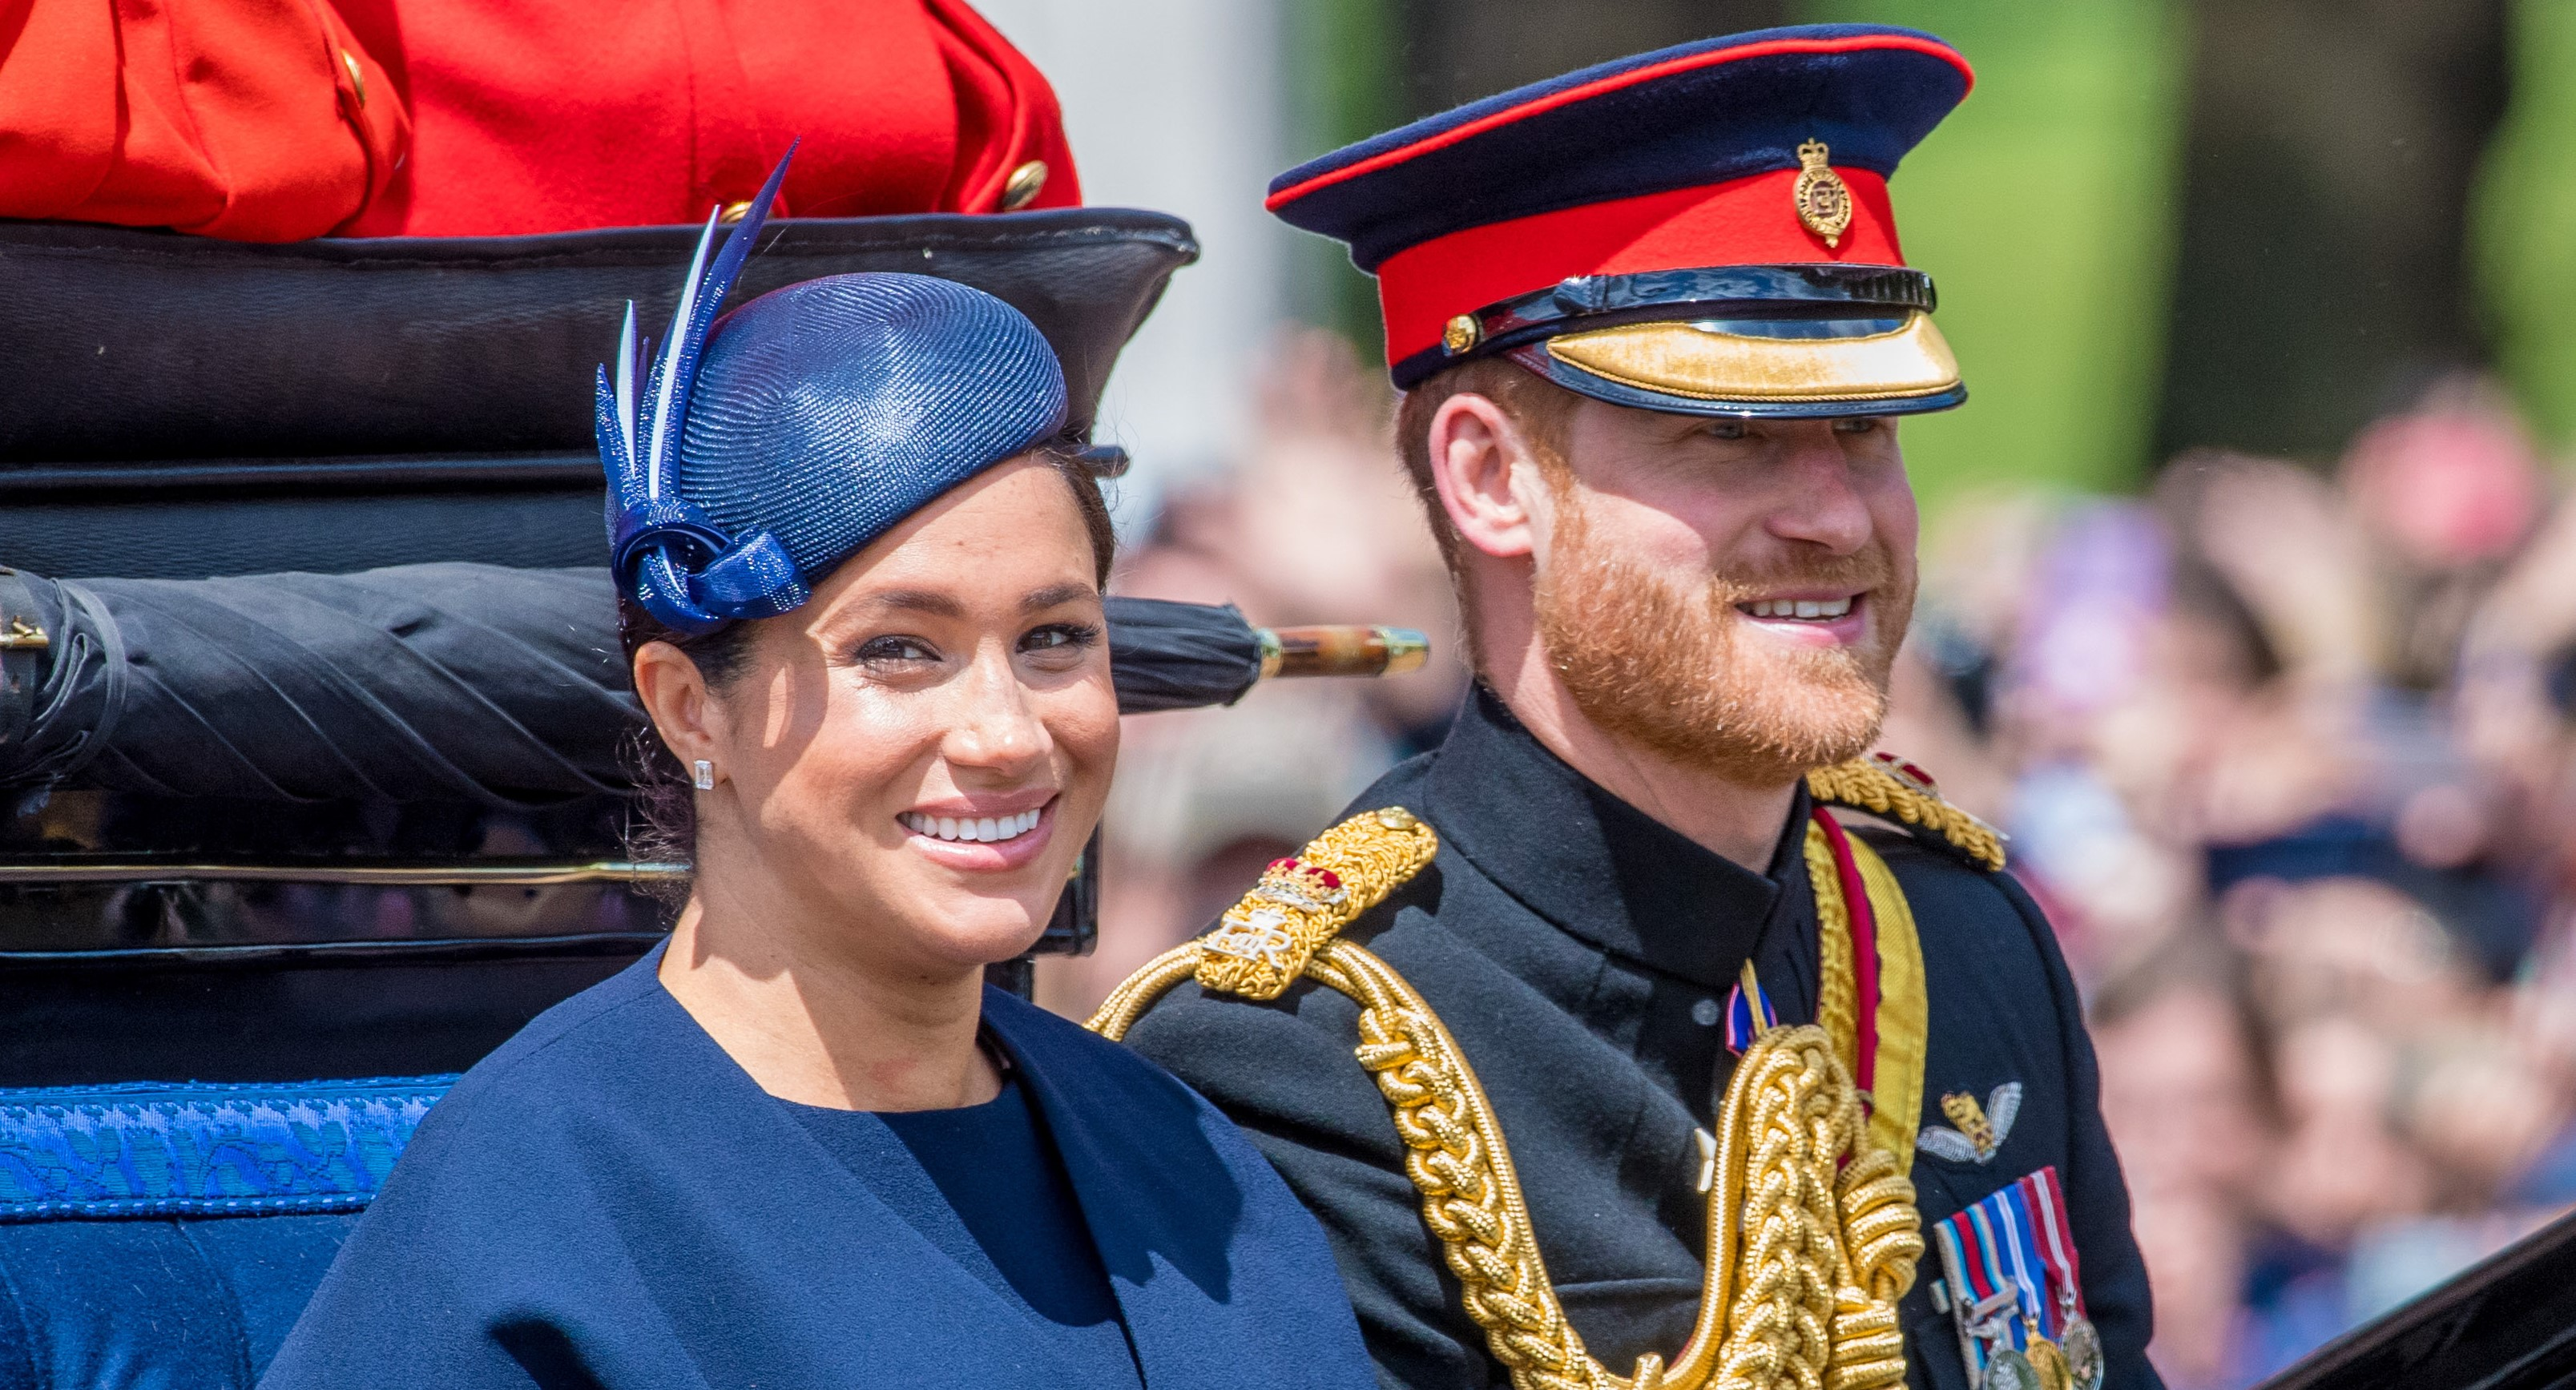 Meghan and Harry to share new photos of baby Archie THIS week?